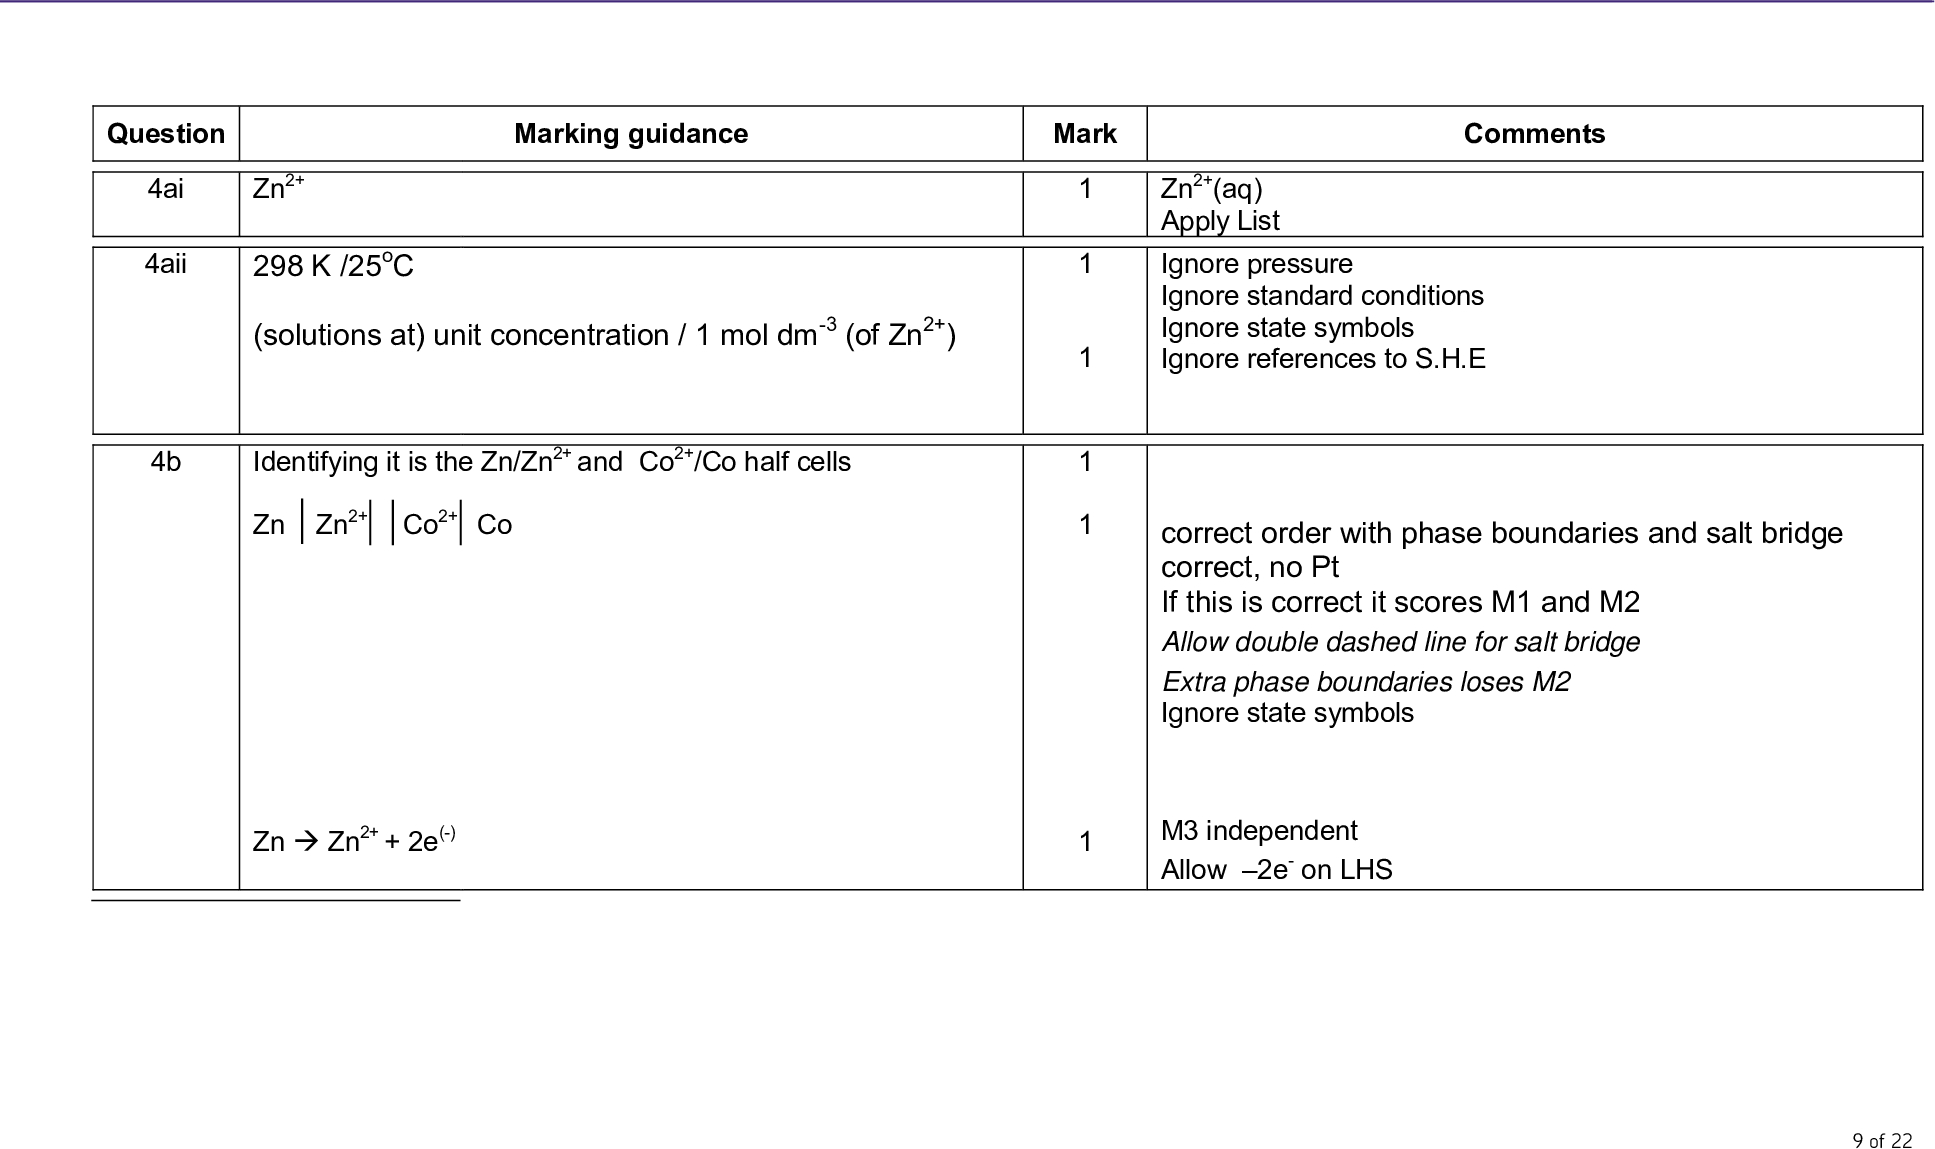 mark scheme a level chemistry chem june question marking guidance mark comments ai aii b zn k oc solutions at unit concentration mol dm of zn identifying it is the zn zn and co co half cells zn zn co co zn zn e zn aq apply list ignore pressure ignore standard conditions ignore state symbols ignore references to s h e correct order with phase boundaries and salt bridge correct no pt if this is correct it scores m and m allow double dashed line for salt bridge extra phase boundaries loses m ignore state symbols m independent allow e on lhs of mark scheme a level chemistry chem june c d co co aq h o l co aq o g h aq oxygen o e o h o electrode e au au or e au au e o h o or the e au au electrode potential is more positive than the e o h o electrode or the emf for the reaction of au and oxygen is v and therefore not spontaneous so oxygen is unable to oxidise gold mark independently ignore state symbols allow multiples allow o mark independently ignore references to water allow gold cannot reduce oxygen of